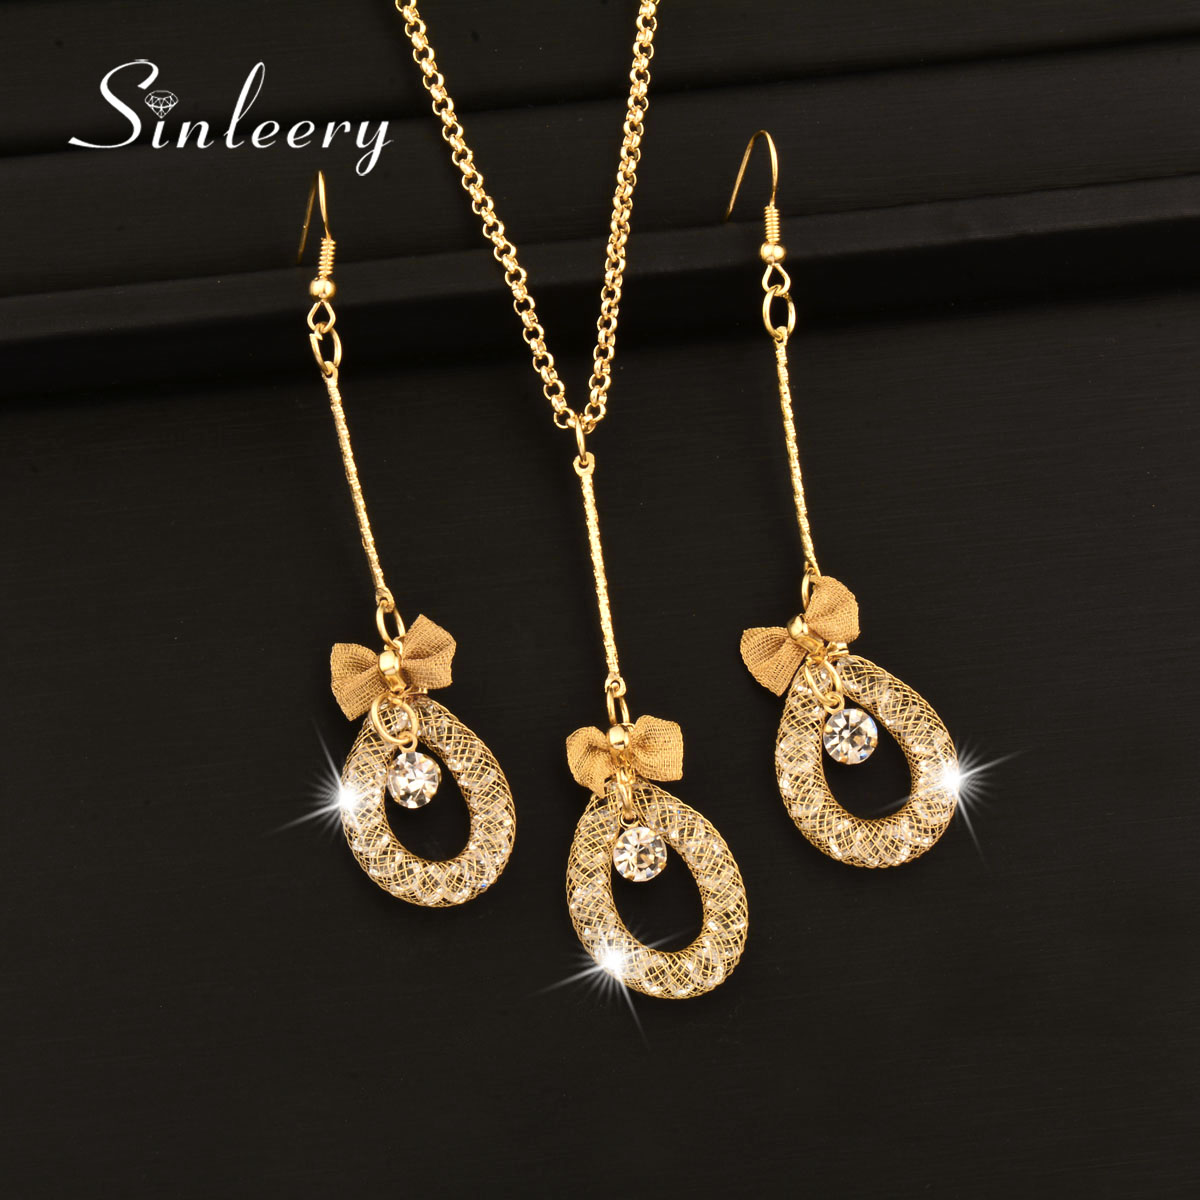 Sinleery Fashion Mesh Rhinestone Inside Necklace Earrings Set Gold Color  Africa Jewelry Sets For Women Wedding